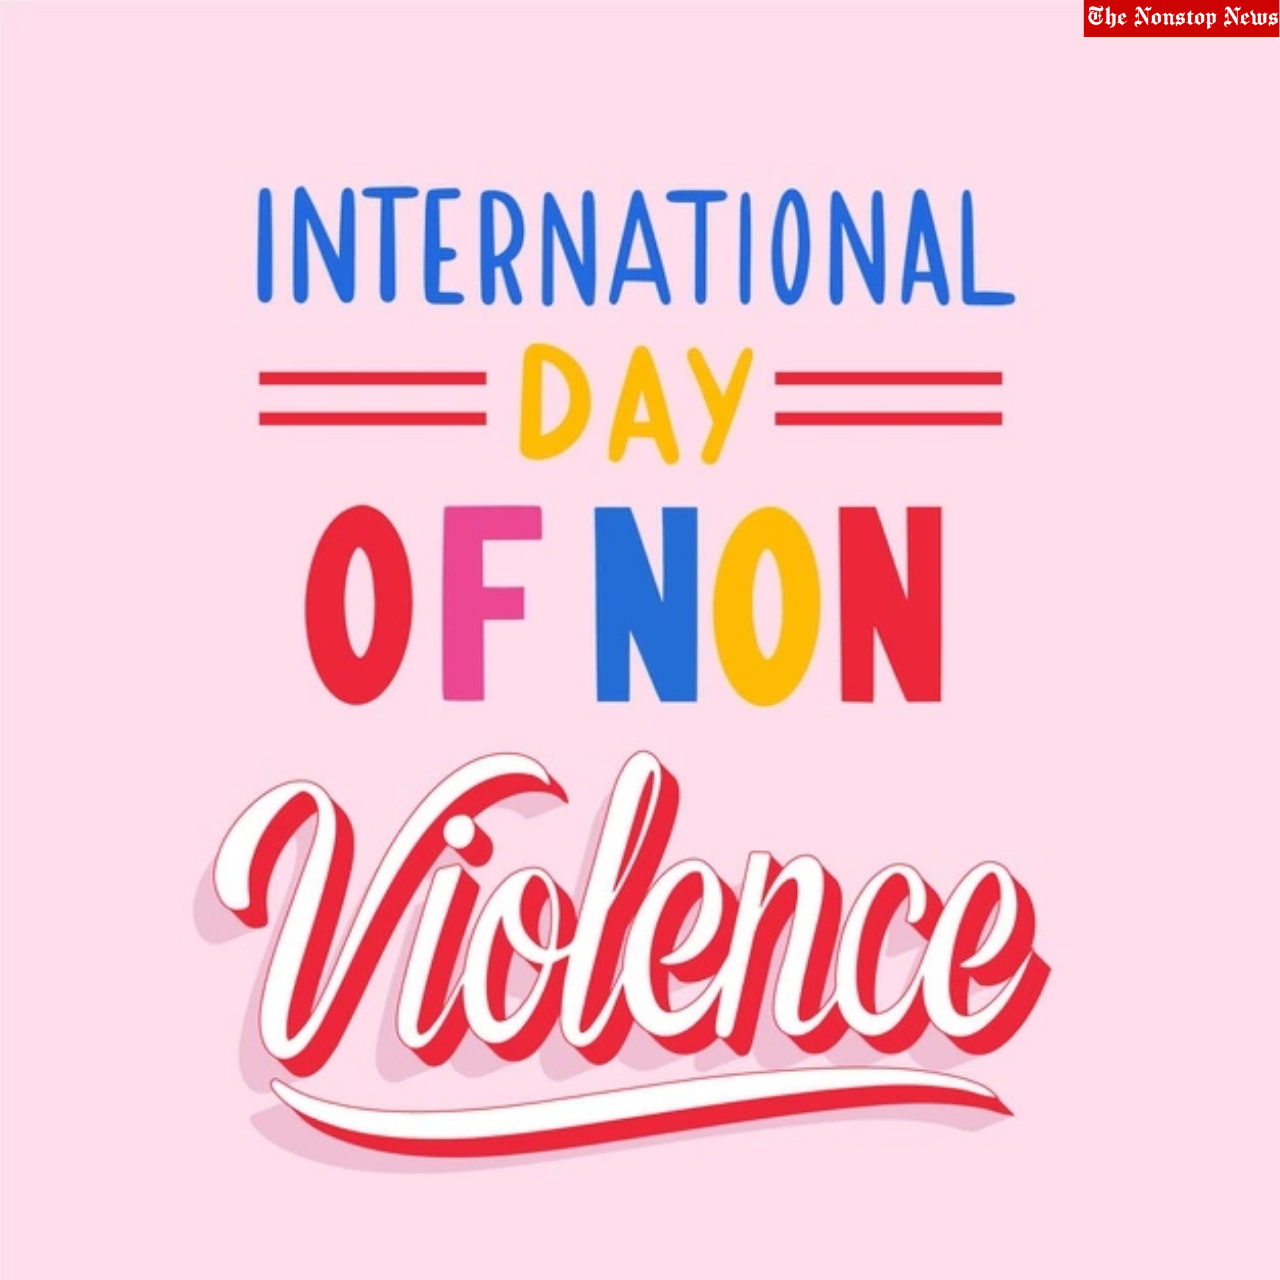 International Day of Non-Violence 2021 Quotes, Wishes, Messages, Greetings, Images, and HD Images to Share